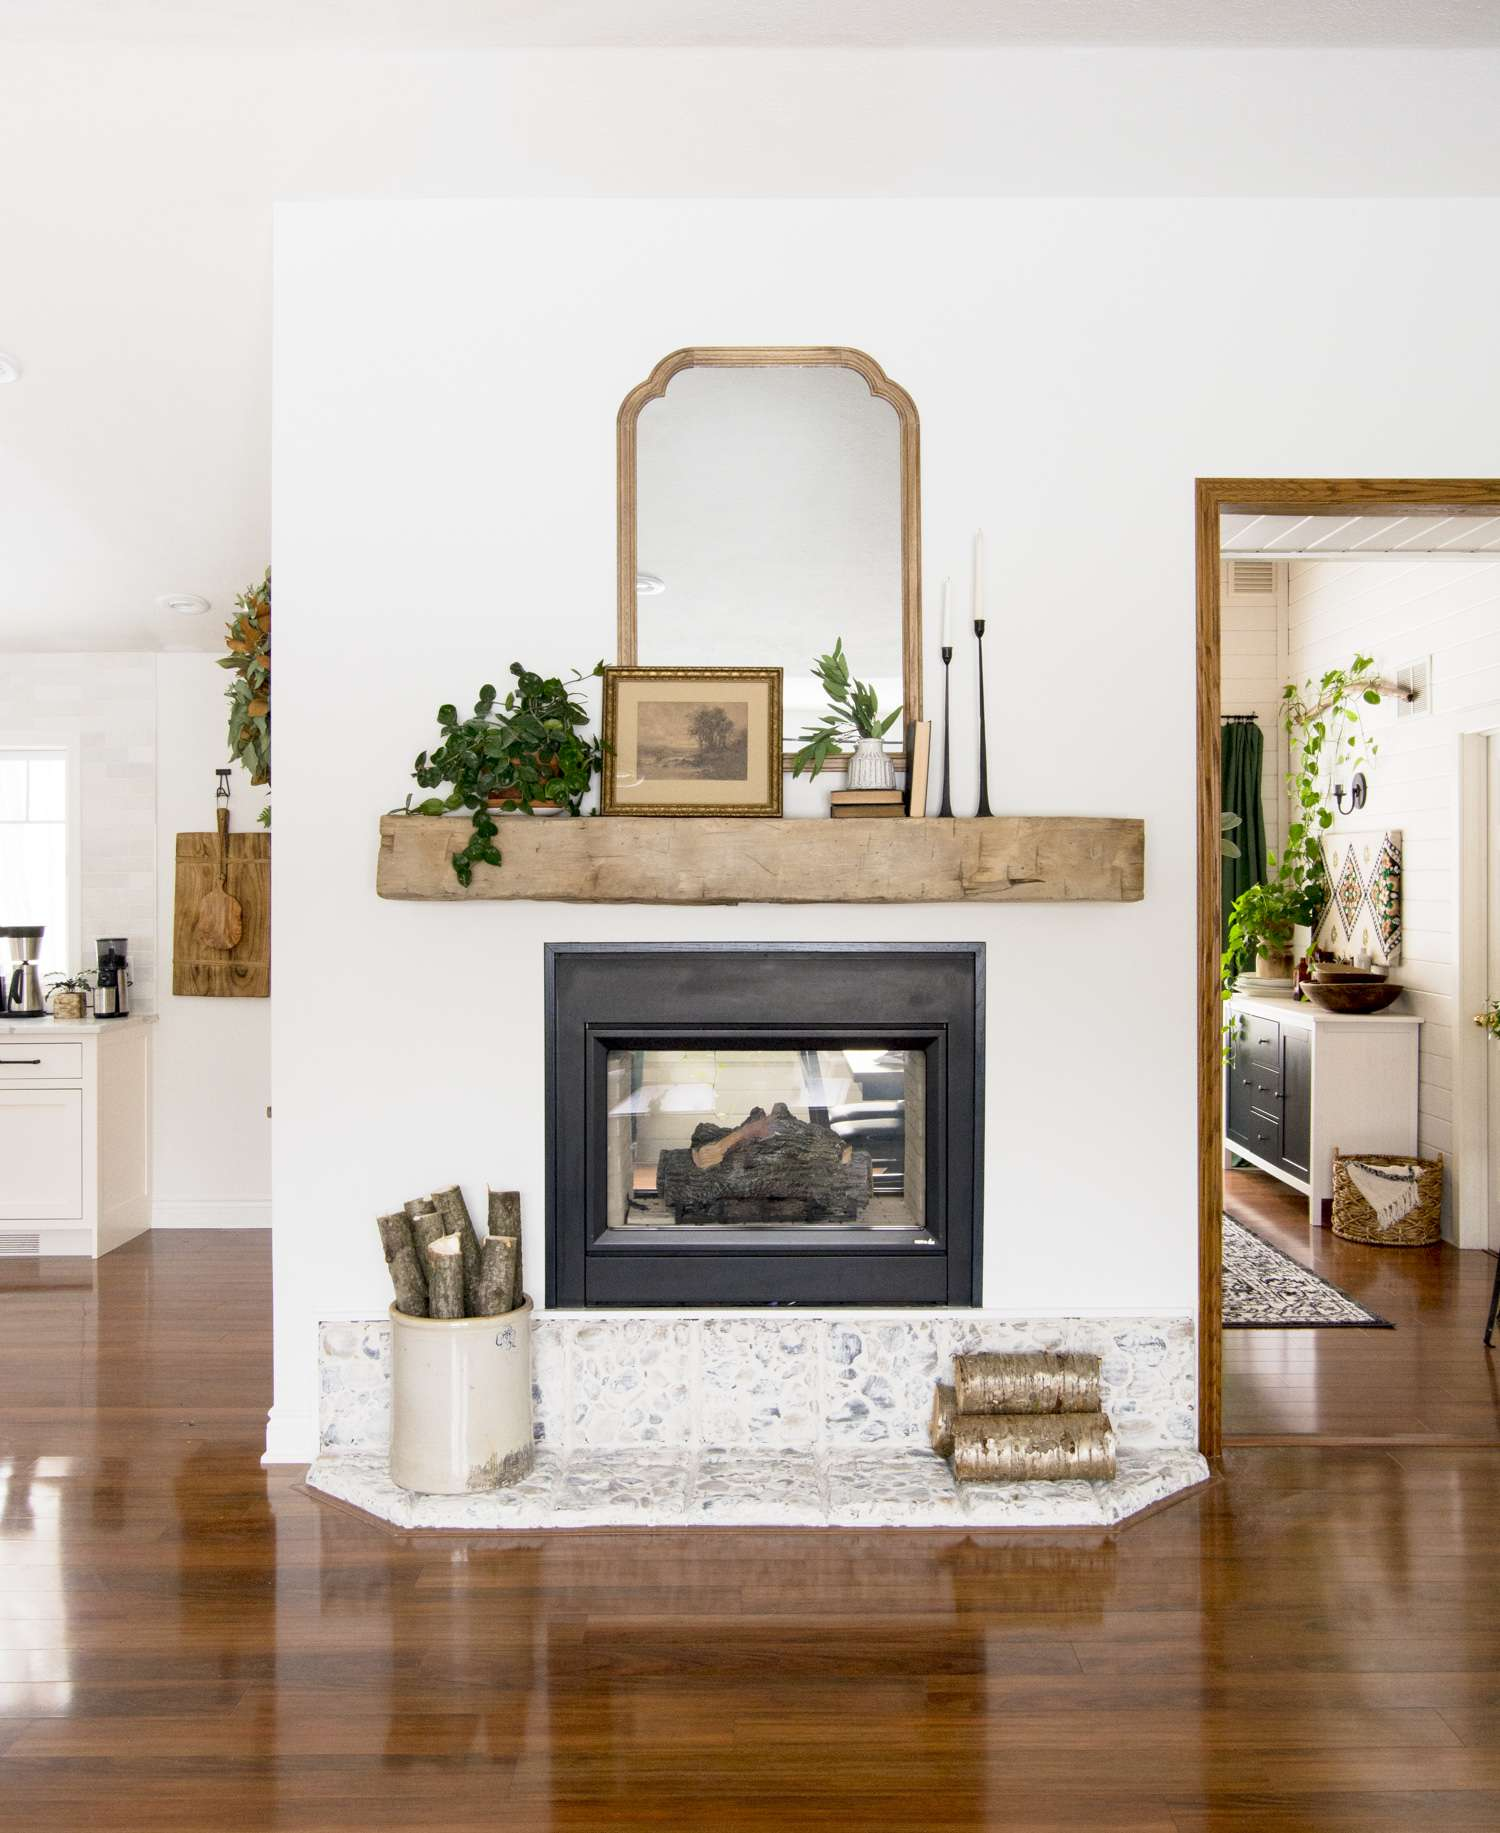 Modern farmhouse style fireplace mantle.